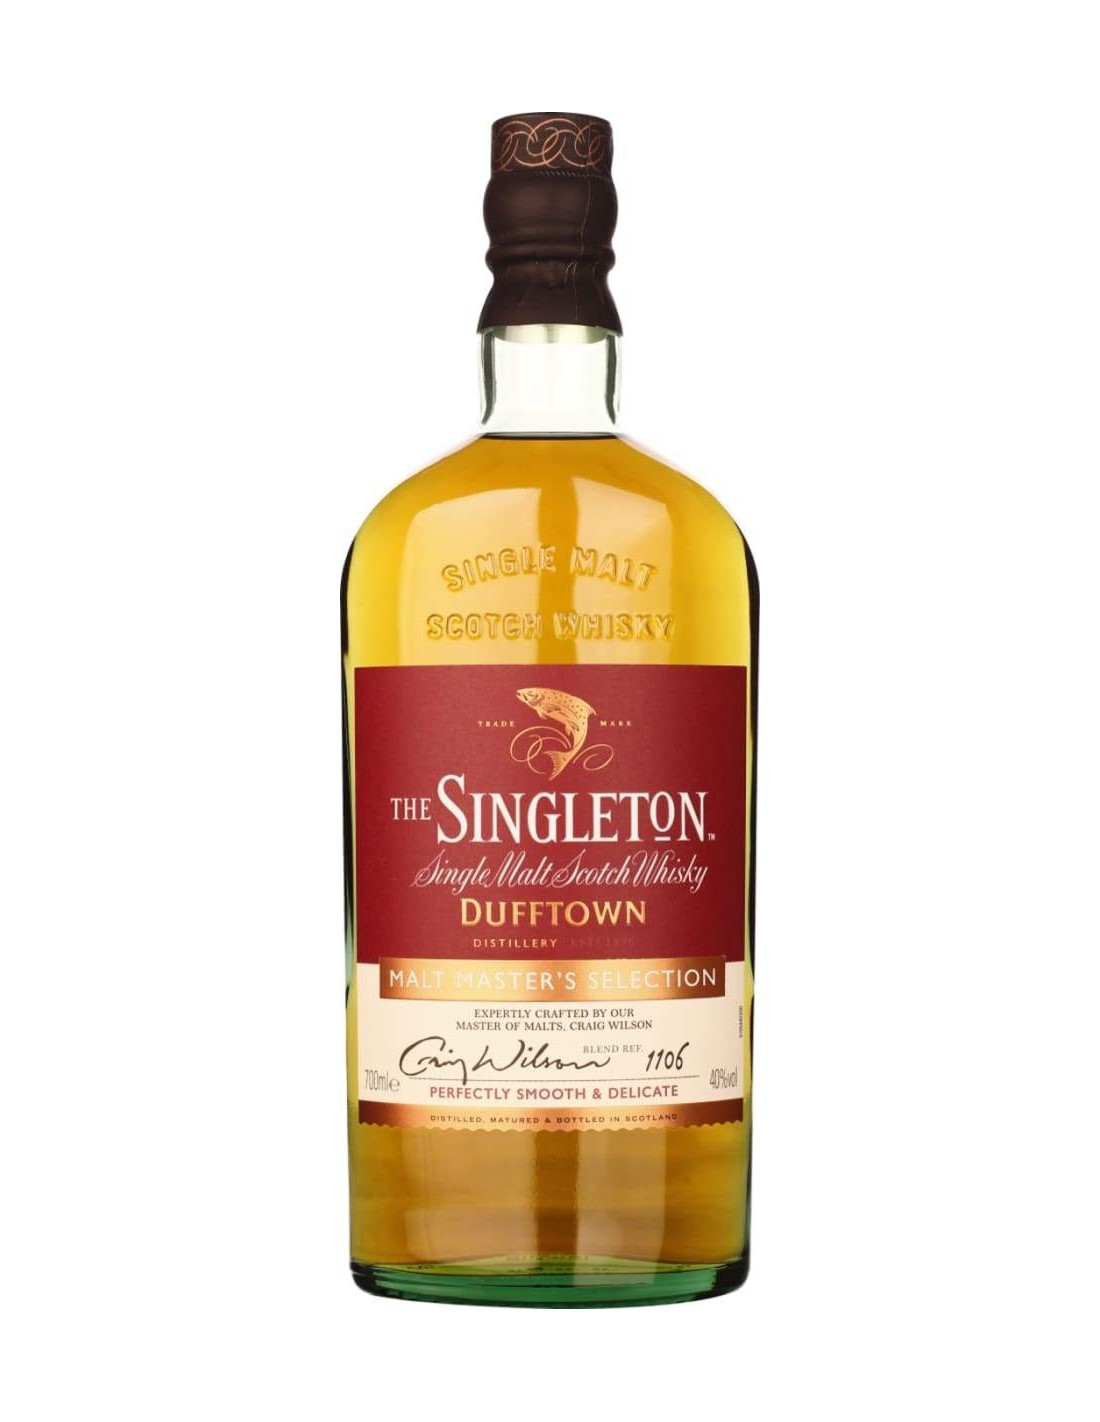 Whisky The Singleton Of Dufftown Malt Master Selection, 40% alc., 0.7L, Scotia